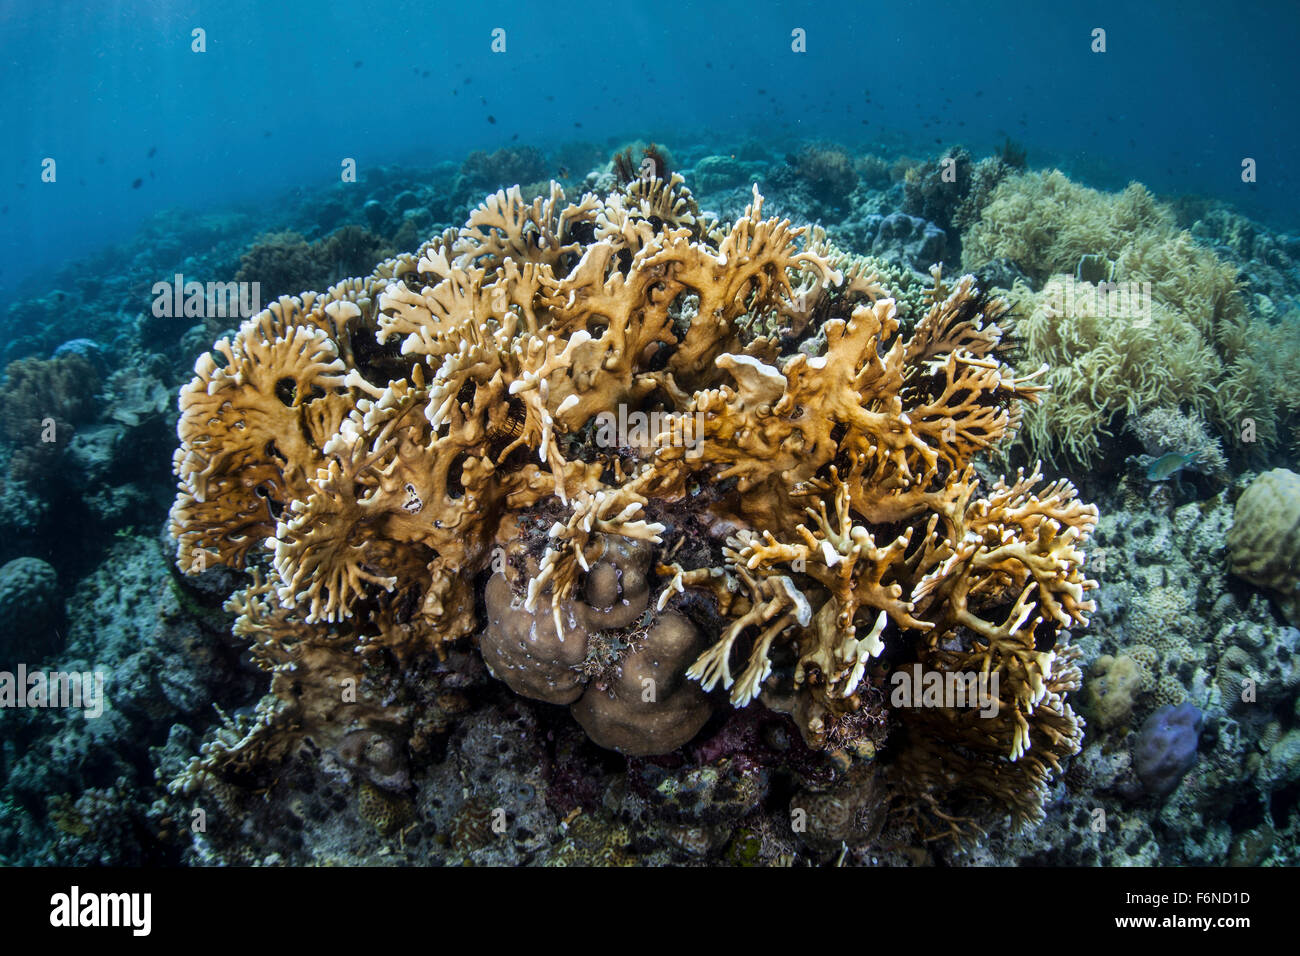 A colony of fire coral grows in shallow water near Alor, Indonesia. This remote region is known for its beautiful - Stock Image